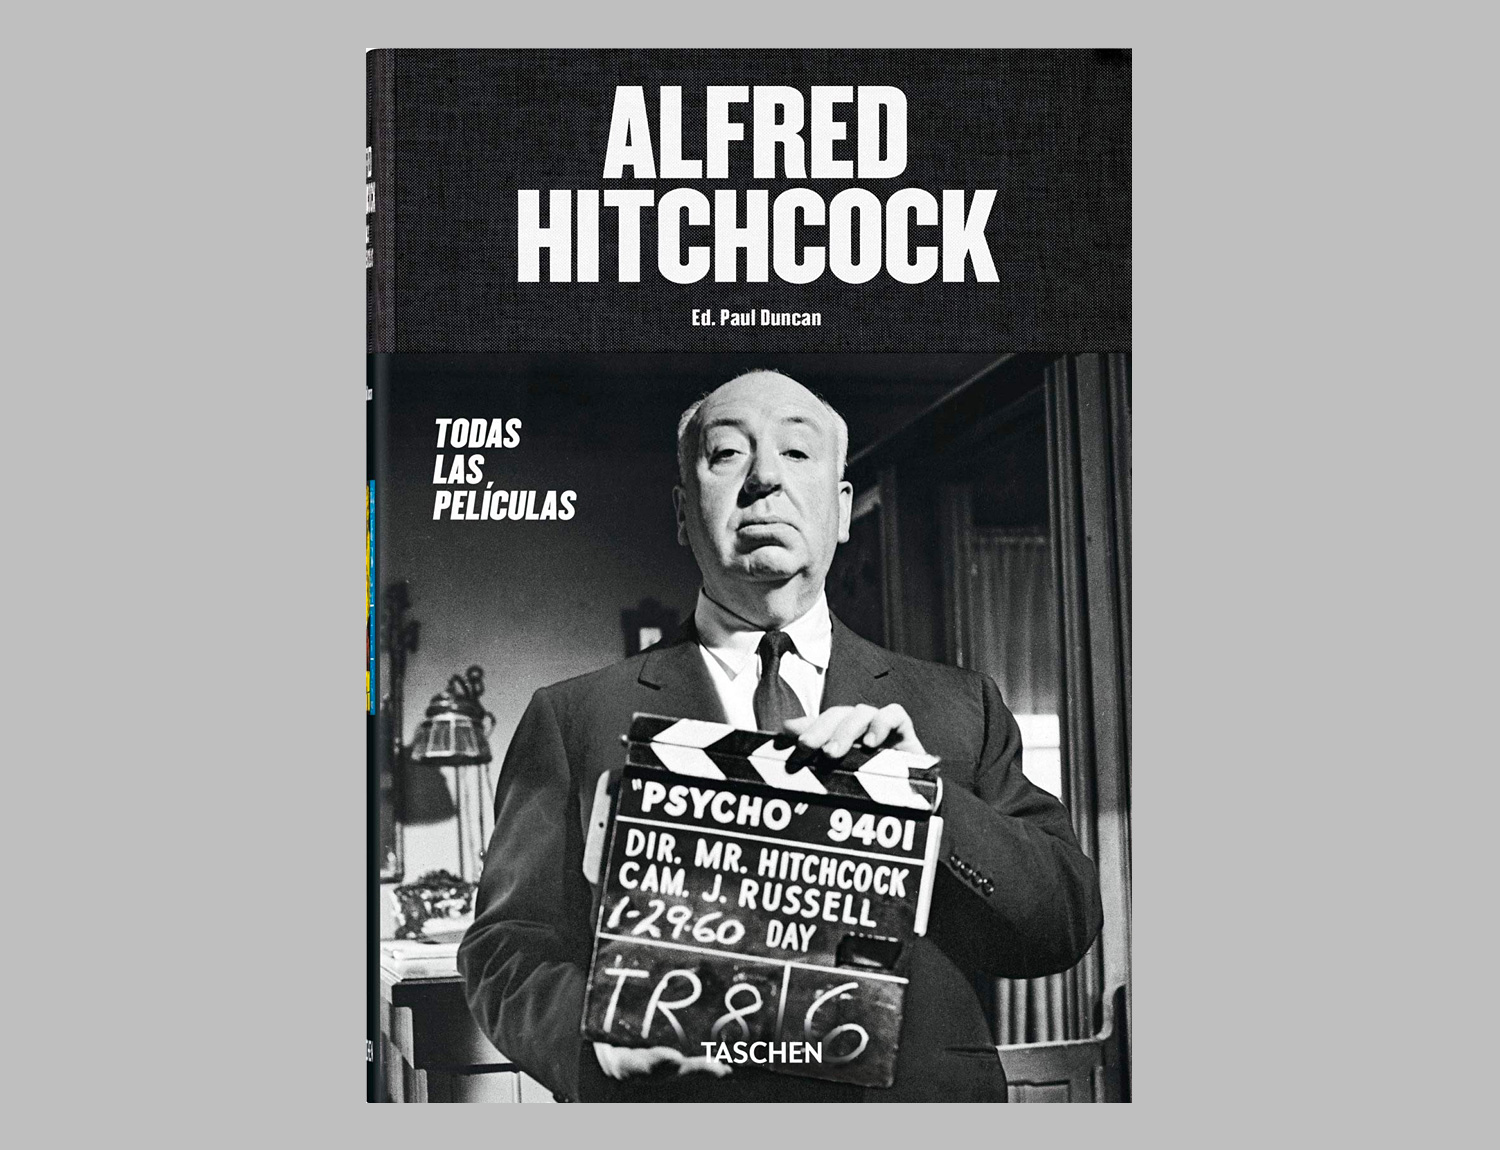 Alfred Hitchcock: The Complete Films at werd.com